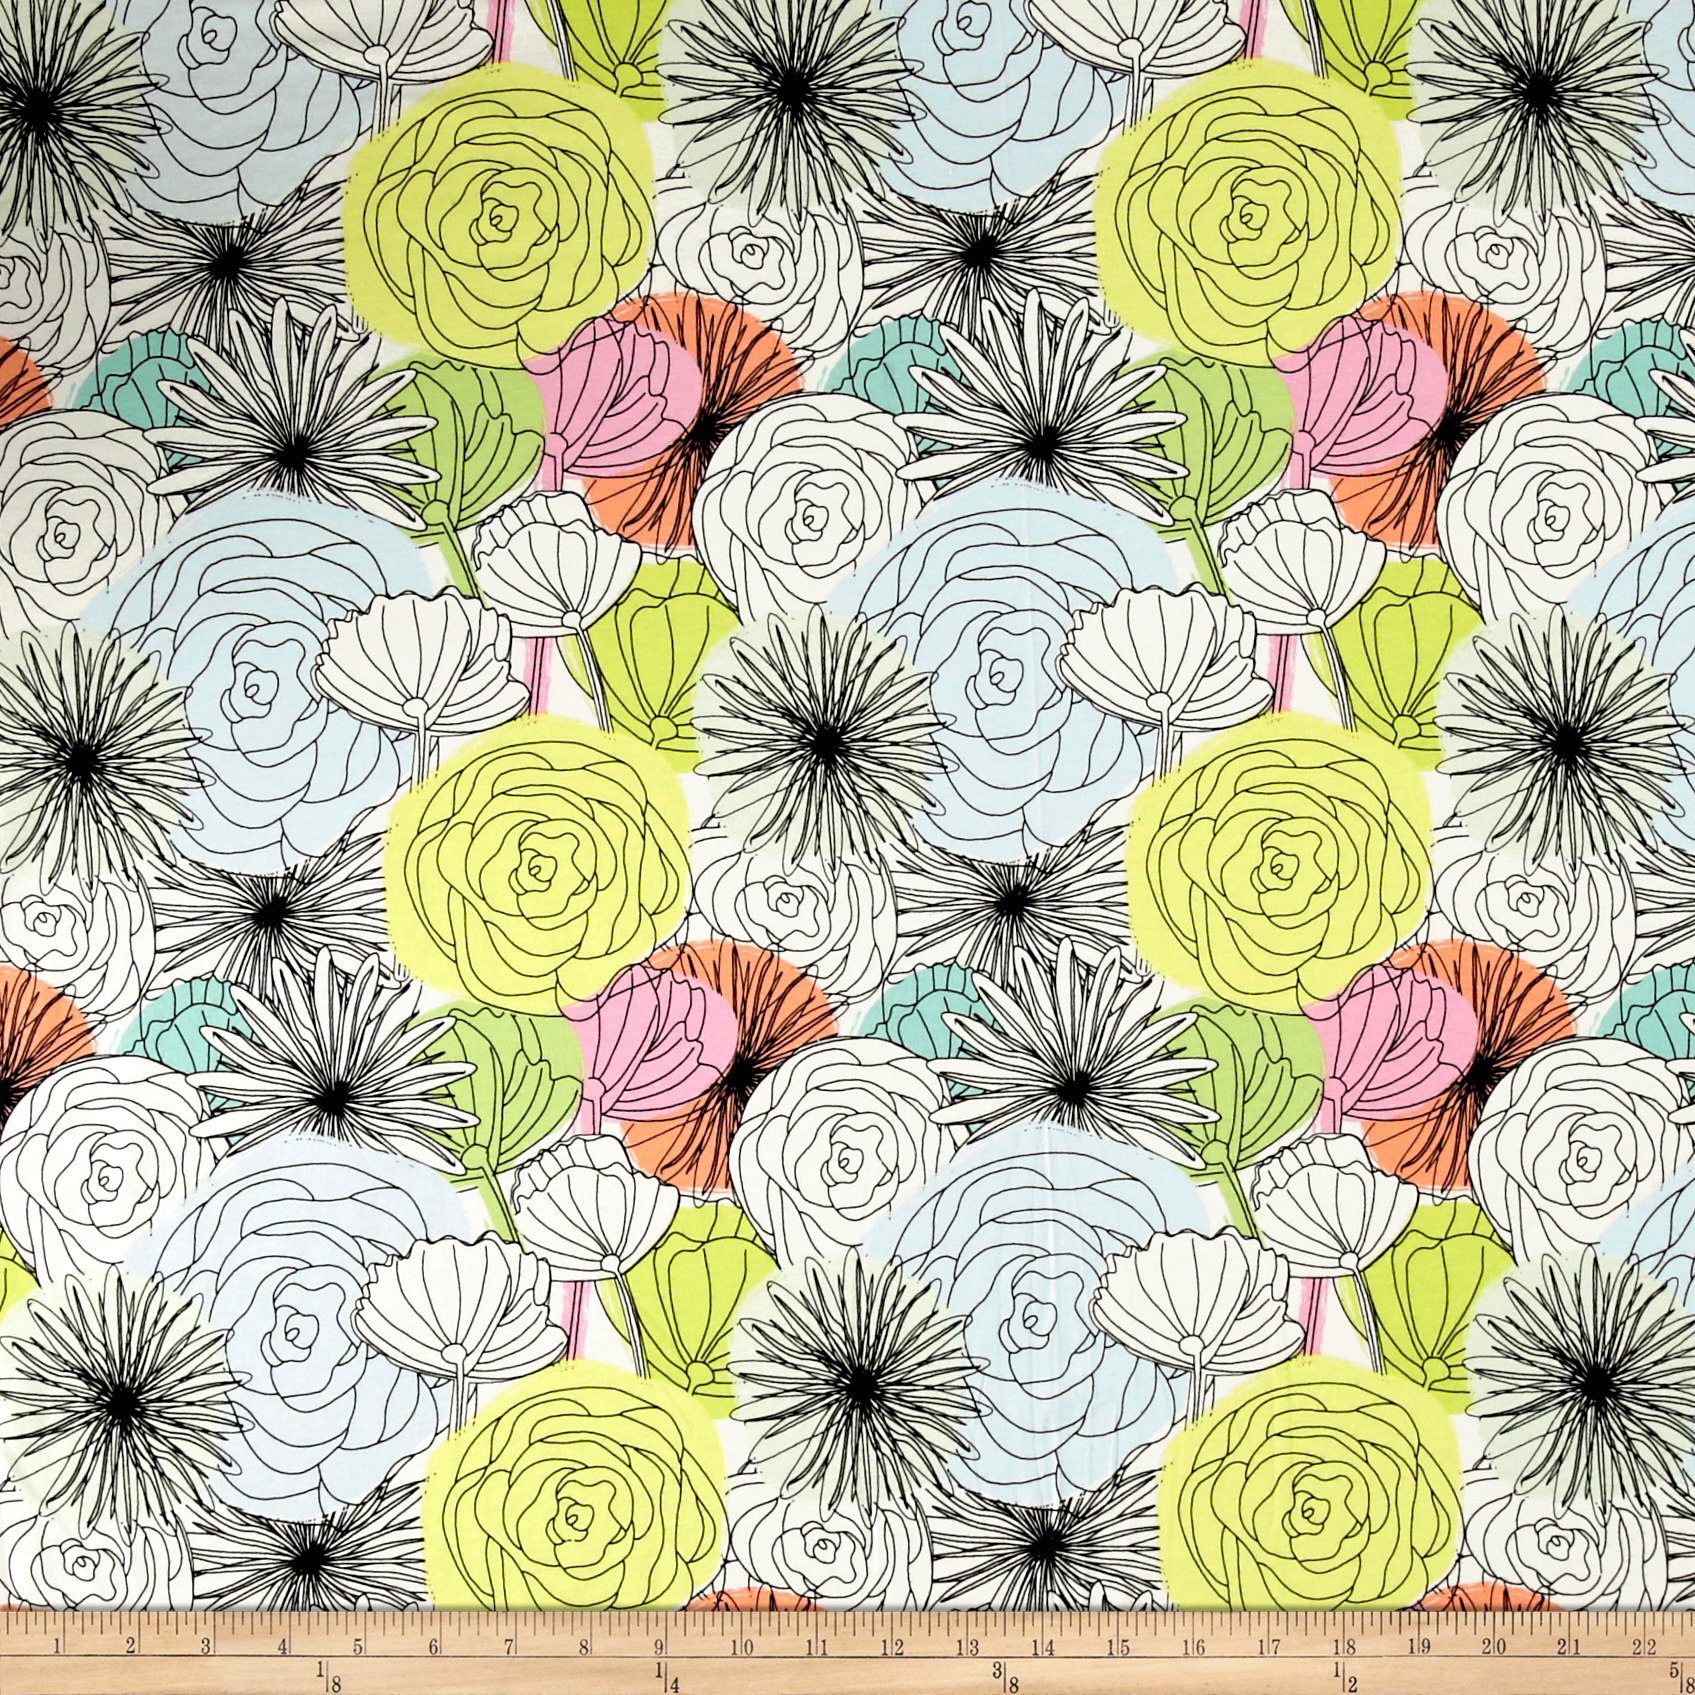 Art Gallery Here Comes the Fun Jersey Knit Bloom Montage Light Fabric by Art Gallery in USA